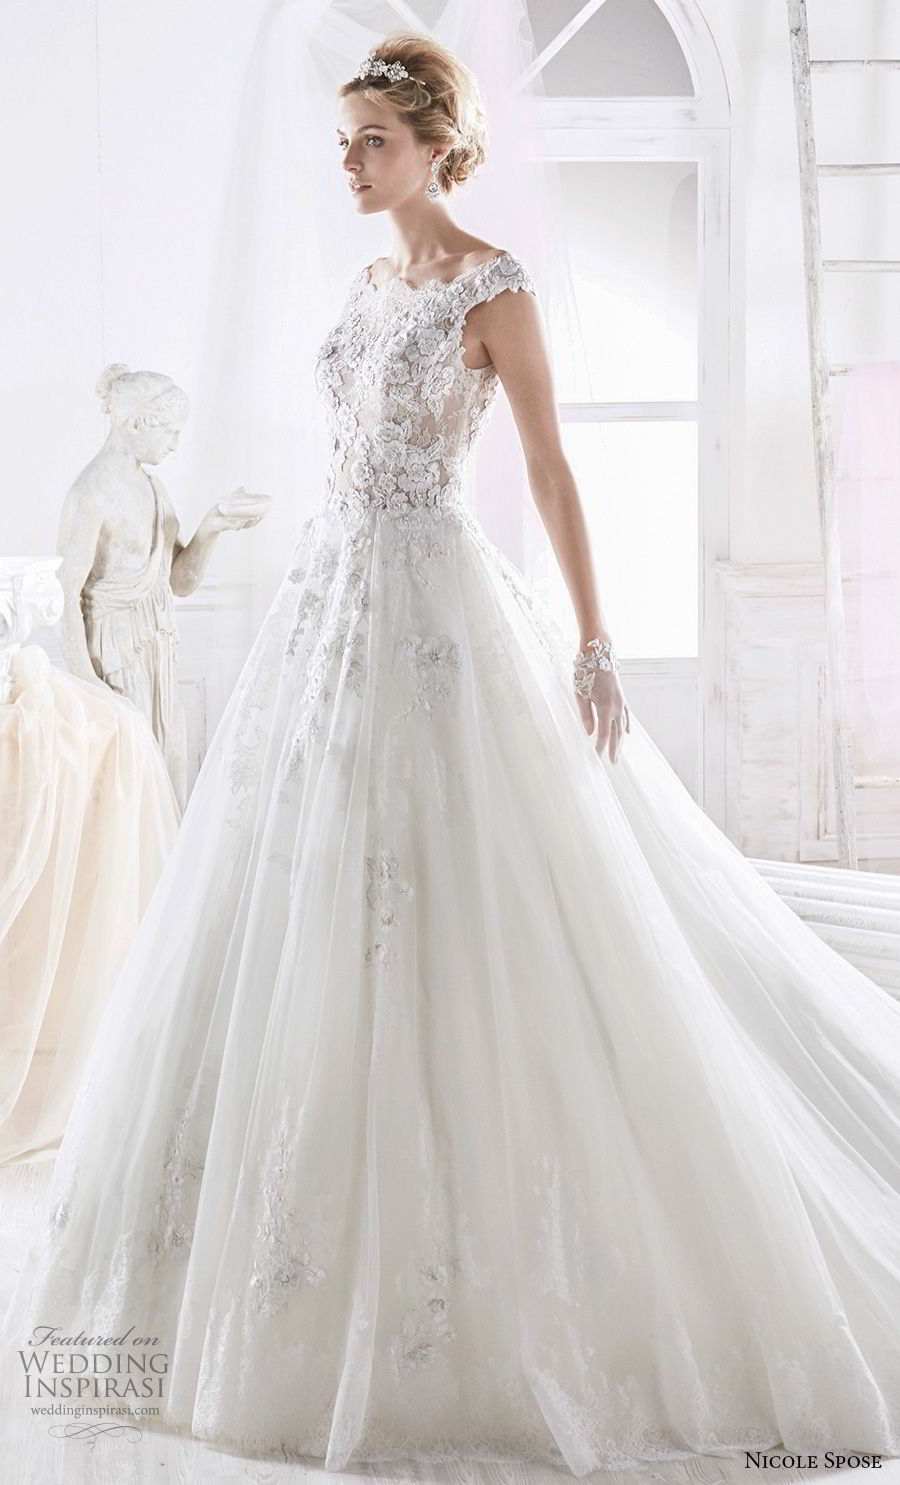 nicole spose 2018 bridal cap sleeves bateau neck full heavily embellished bodice romantic a line wedding dress sheer lace back chapel train (2) mv